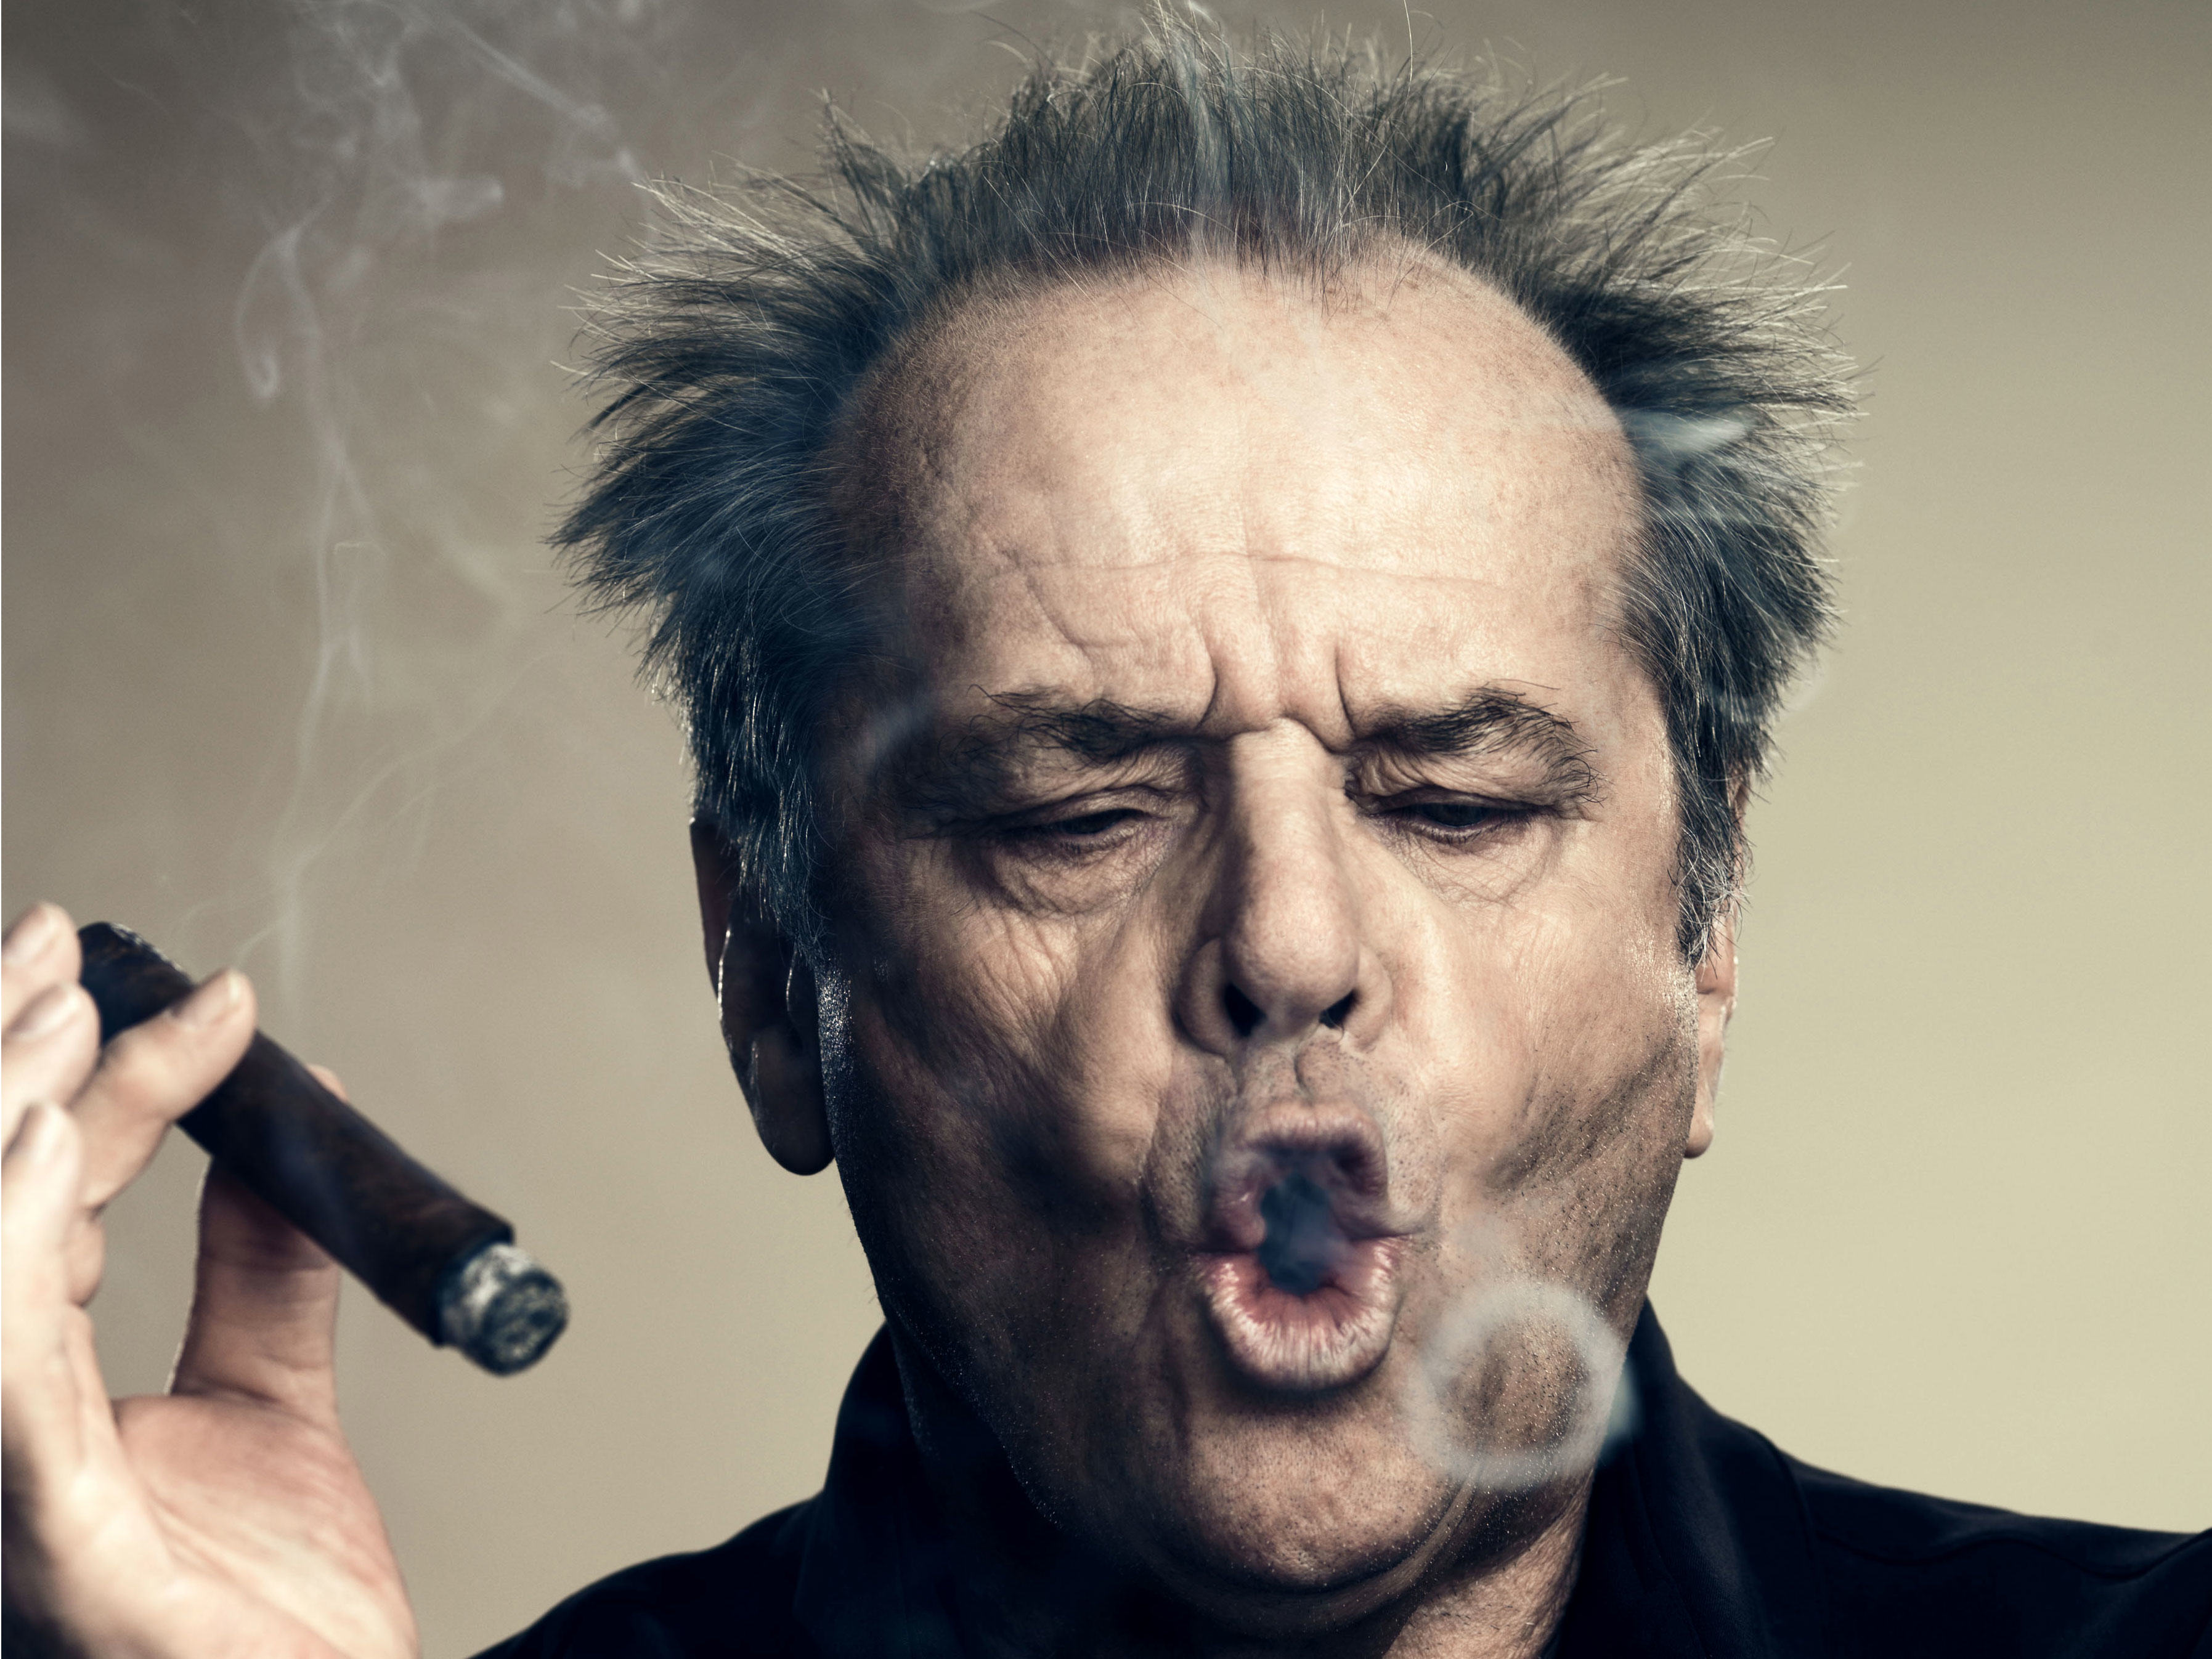 %name As Jack Nicholson Turns 78 Today, Here Are Some Of His Best Quotes